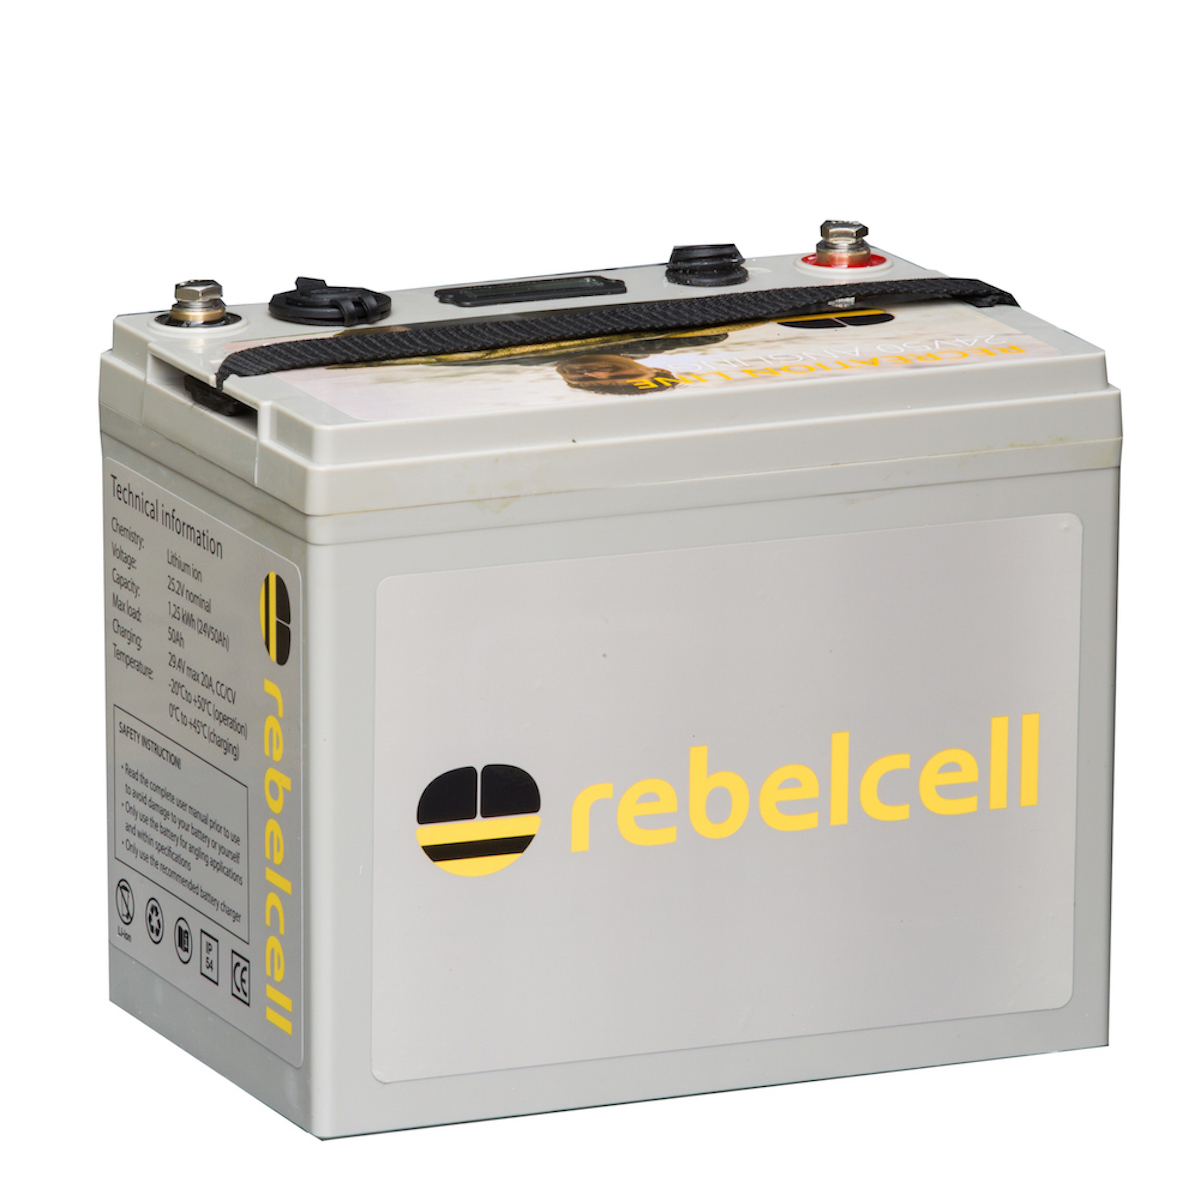 Rebelcell 24V50 Angling li-ion accu